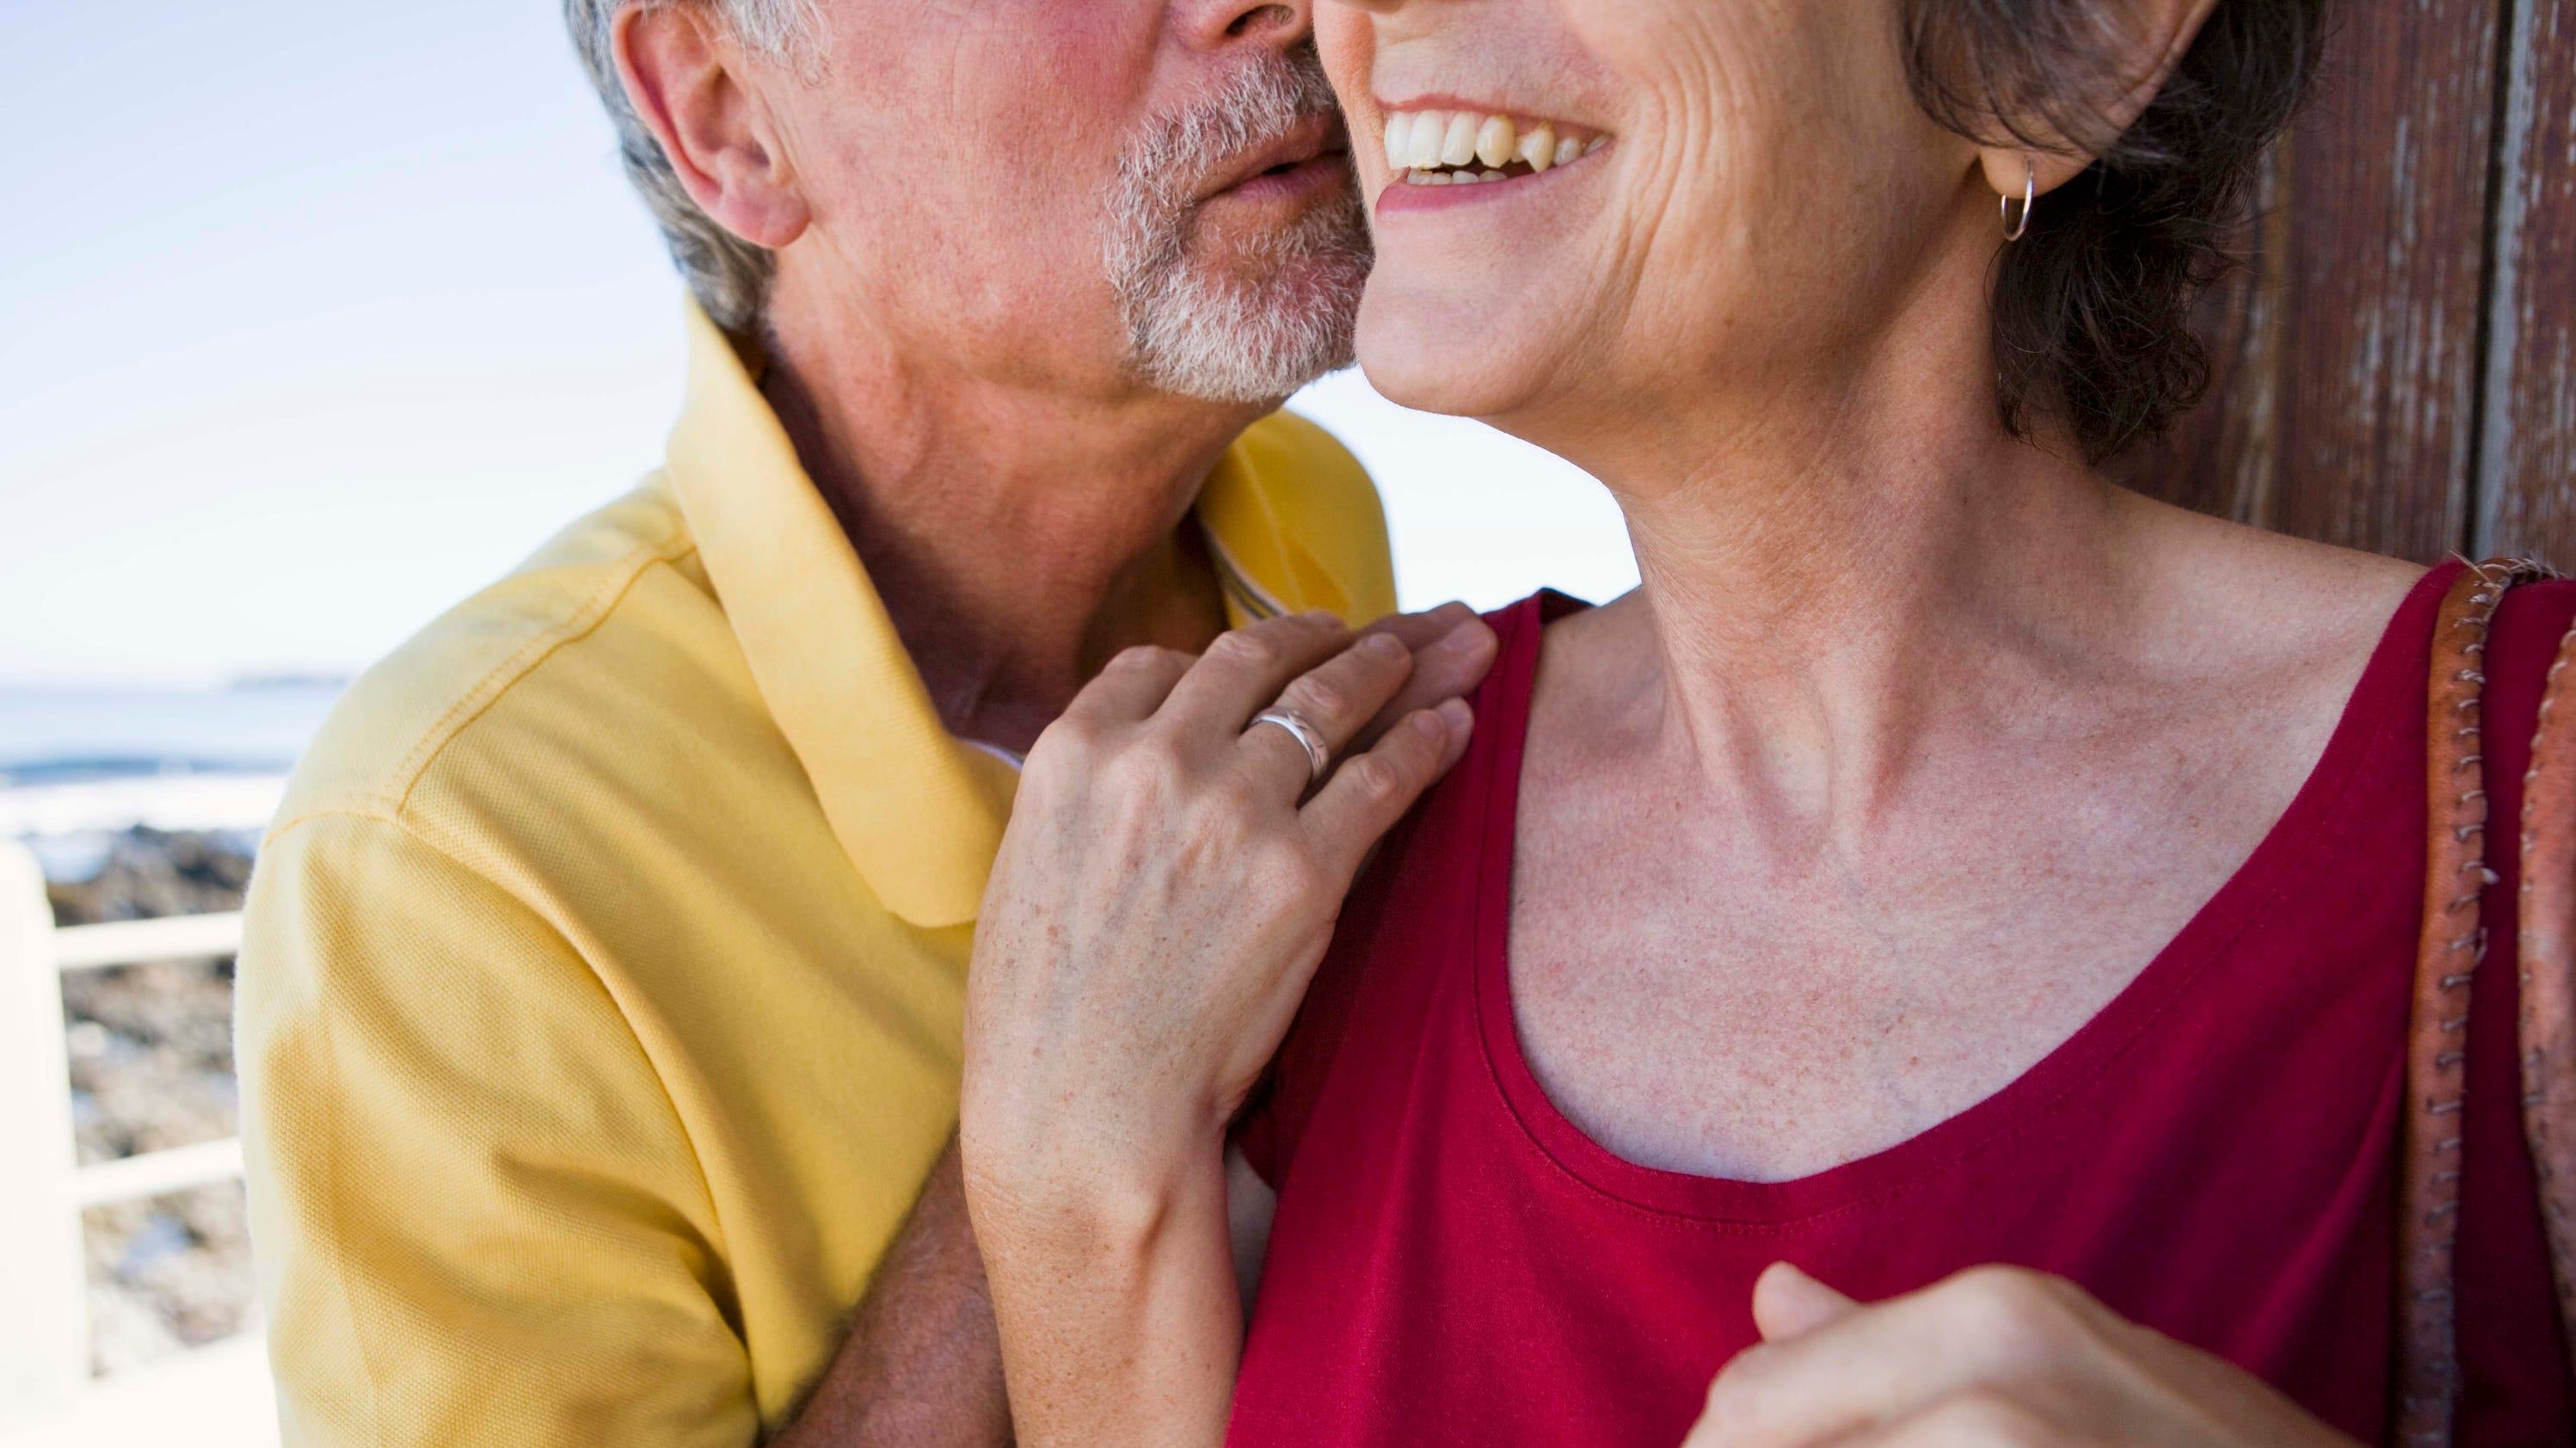 as women age, sexuality changes but does not disappear